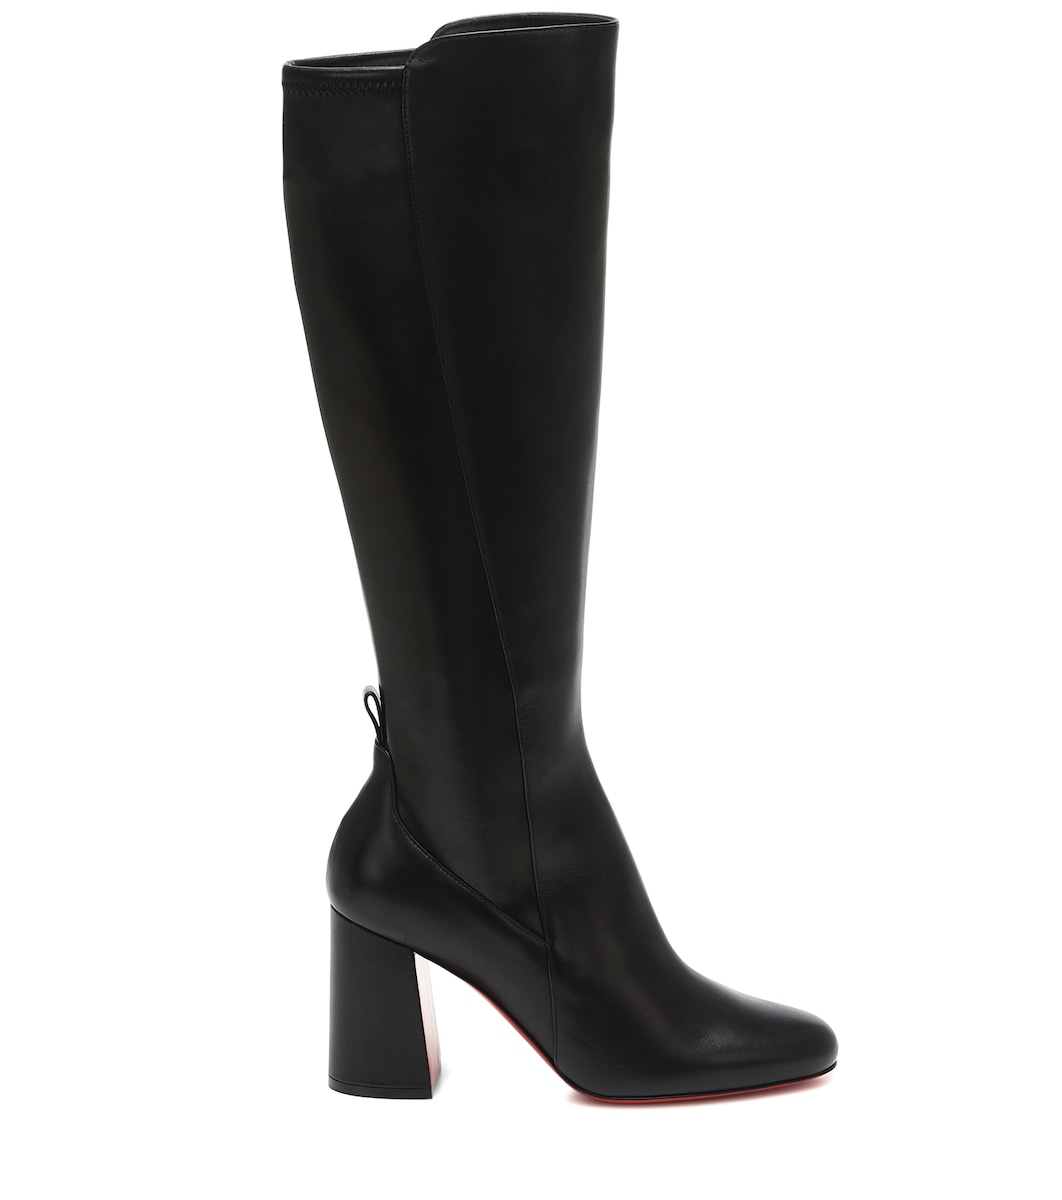 Kronobotte Knee-High Leather Boots